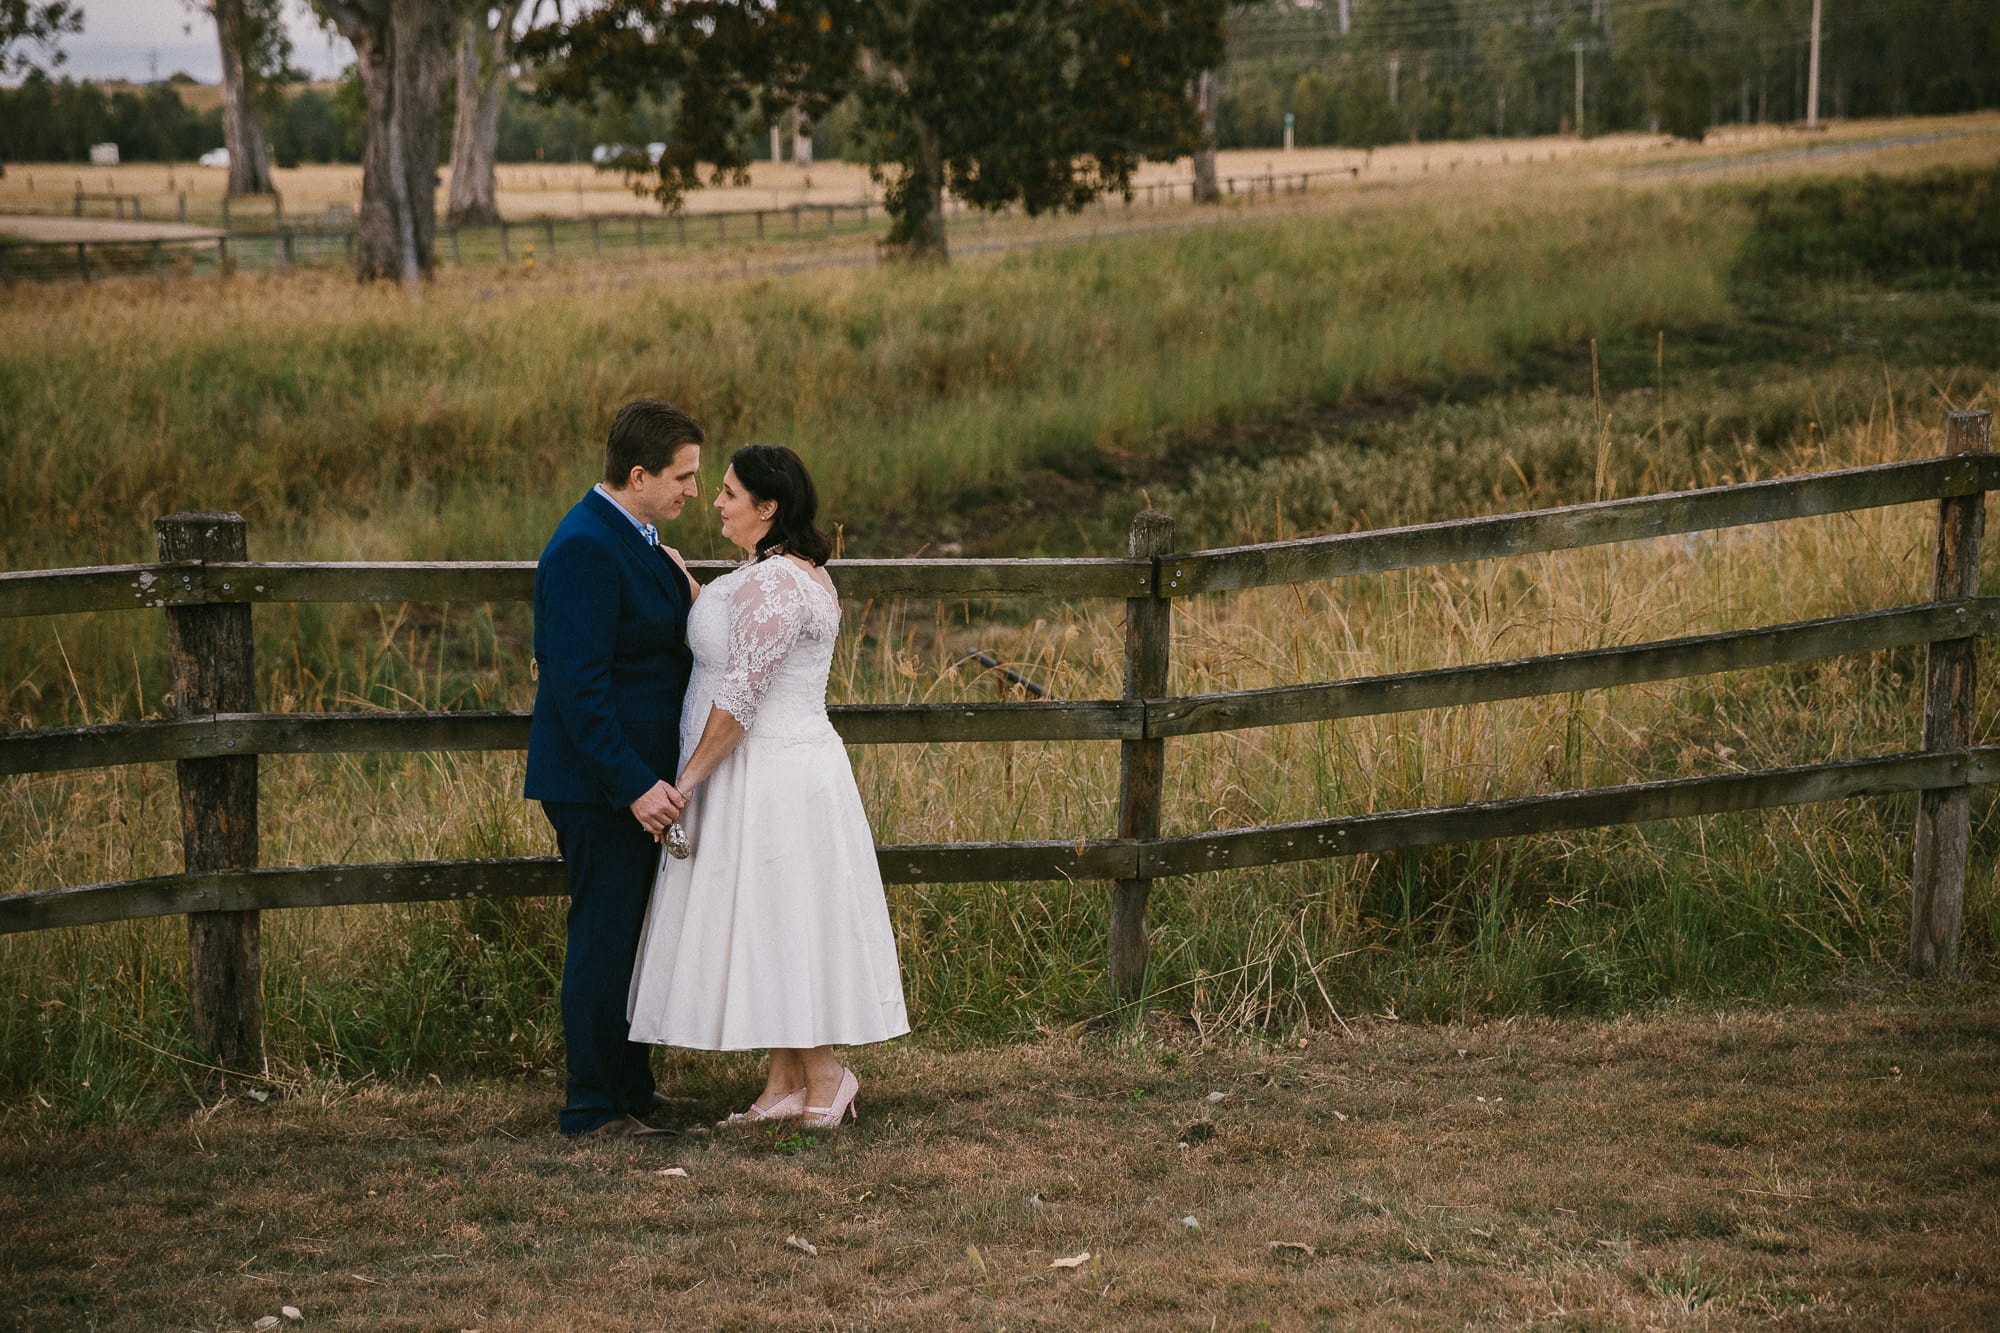 Albert River wedding photographer